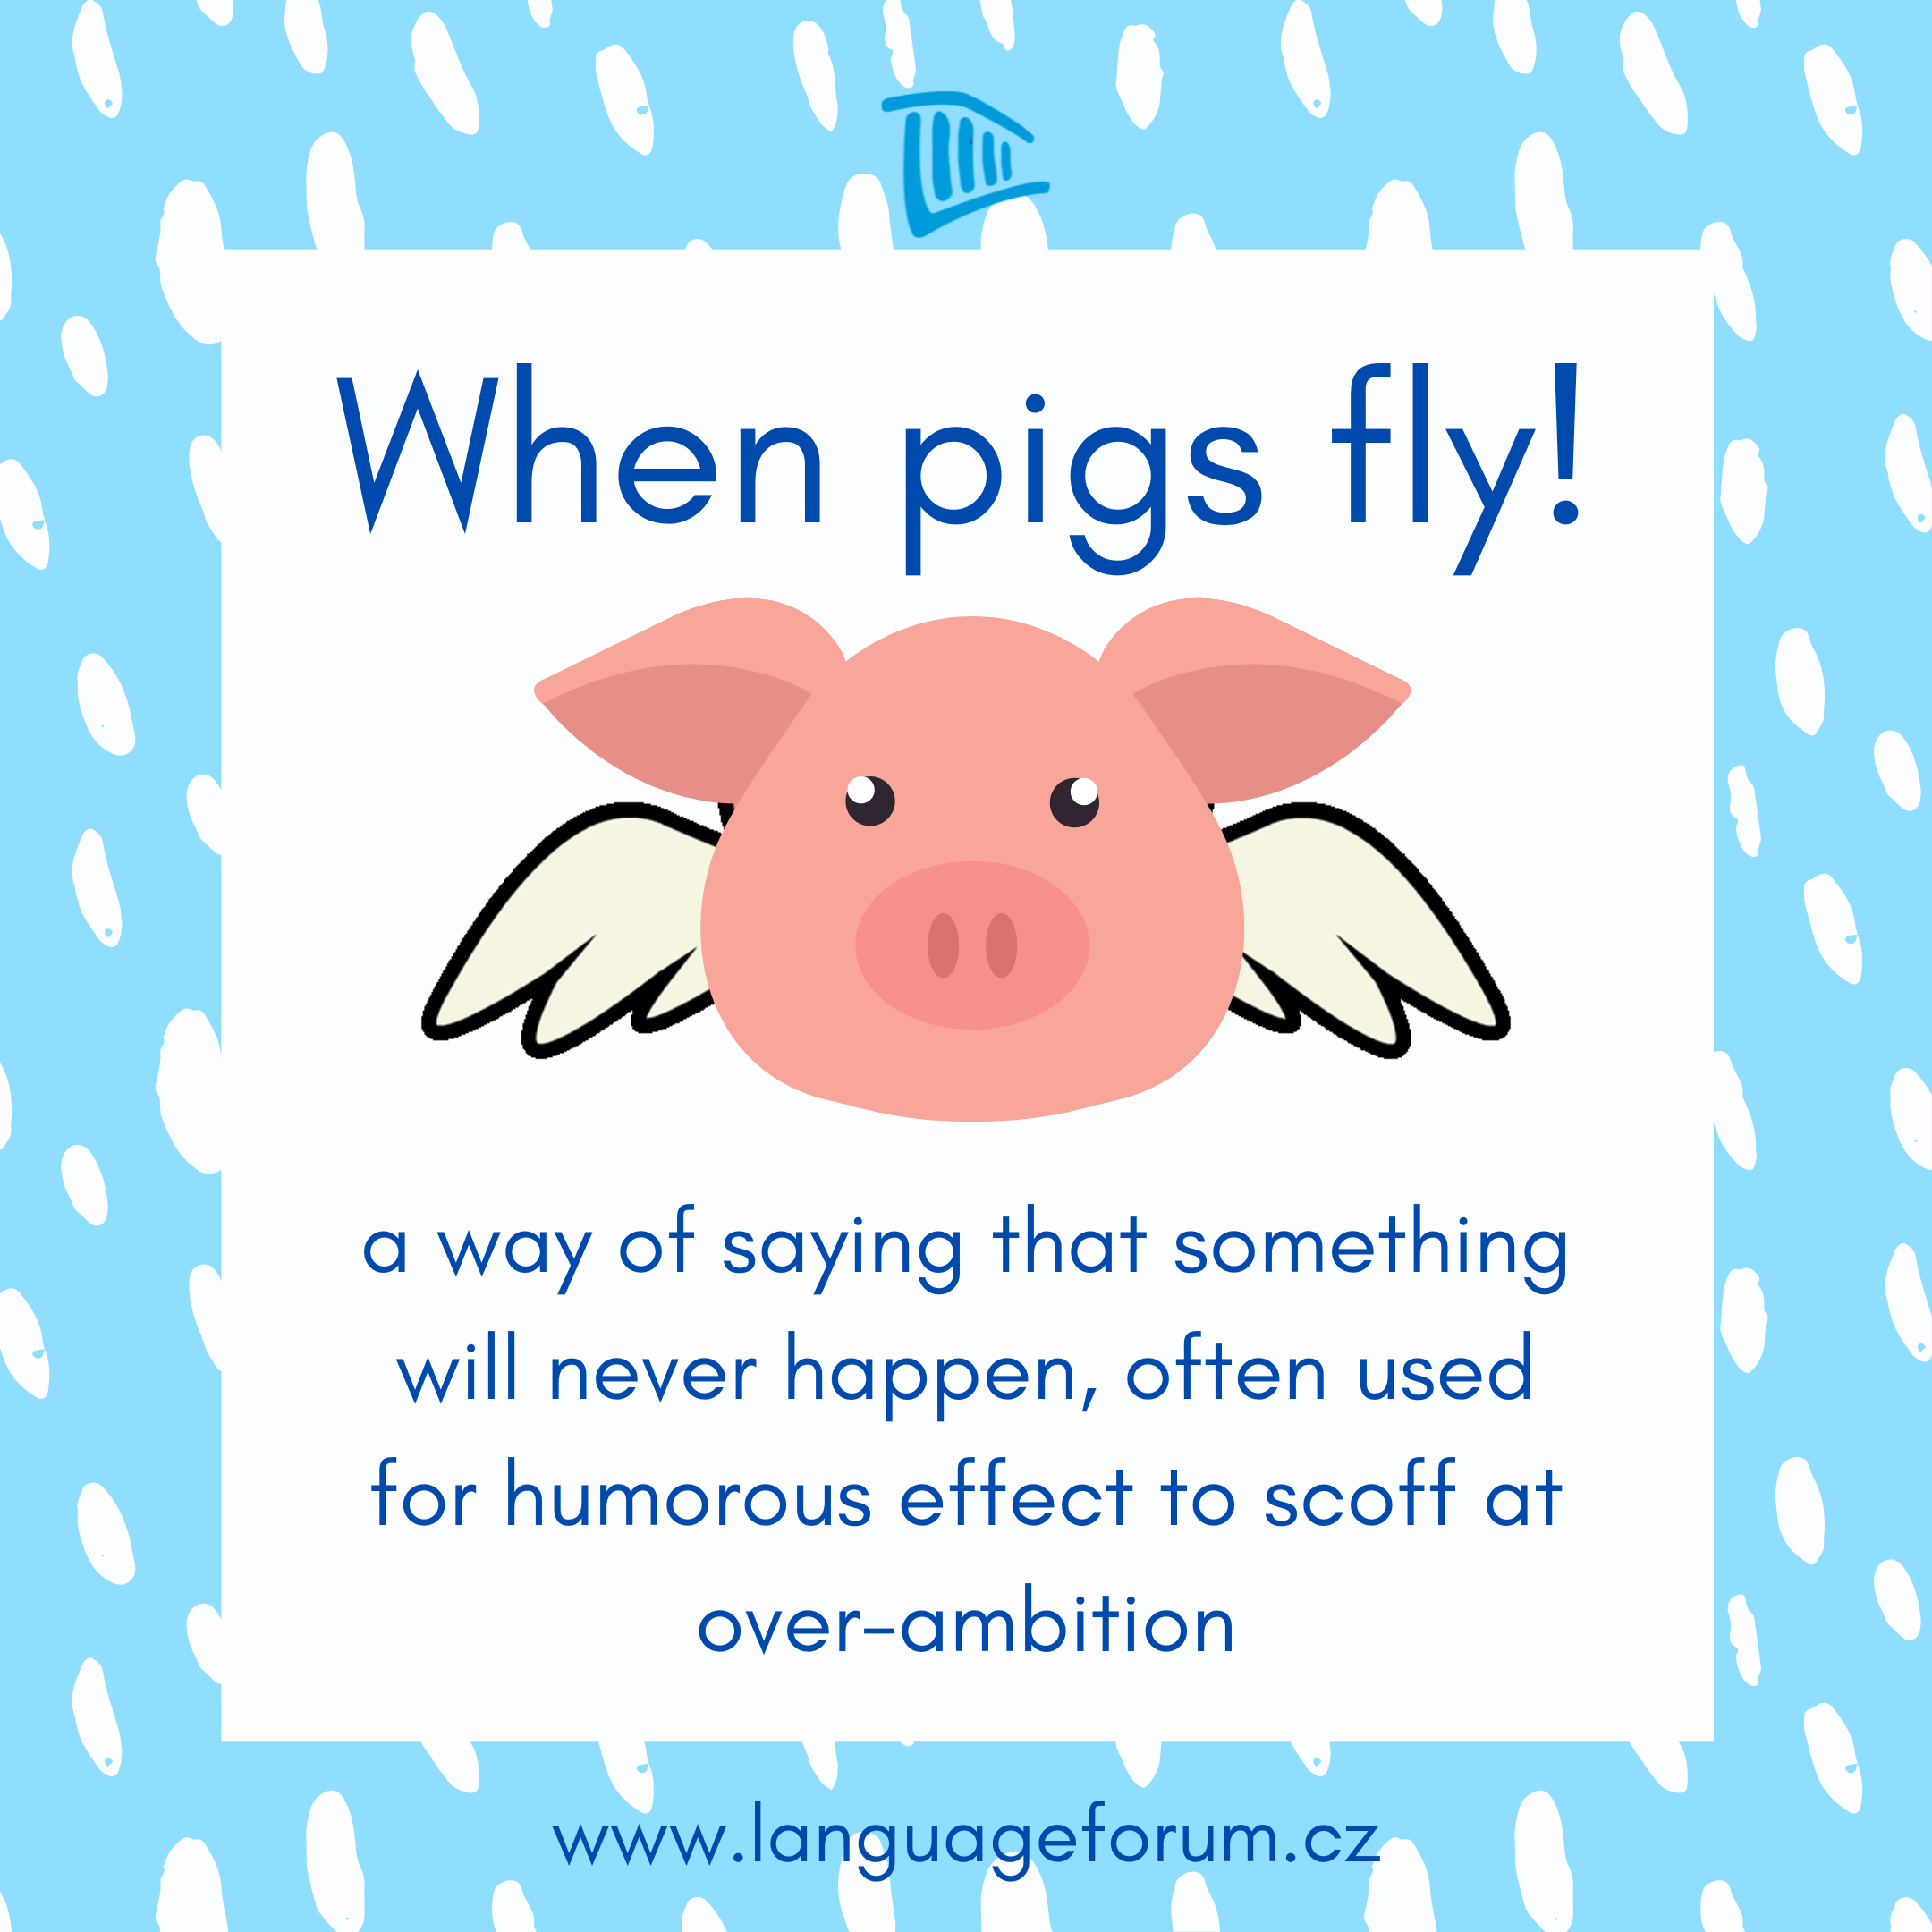 Idiom Of The Week When Pigs Fly Can You Think Of Any Other Idioms Used To Express That Something Is Highly Improba Idioms And Phrases English Idioms Idioms